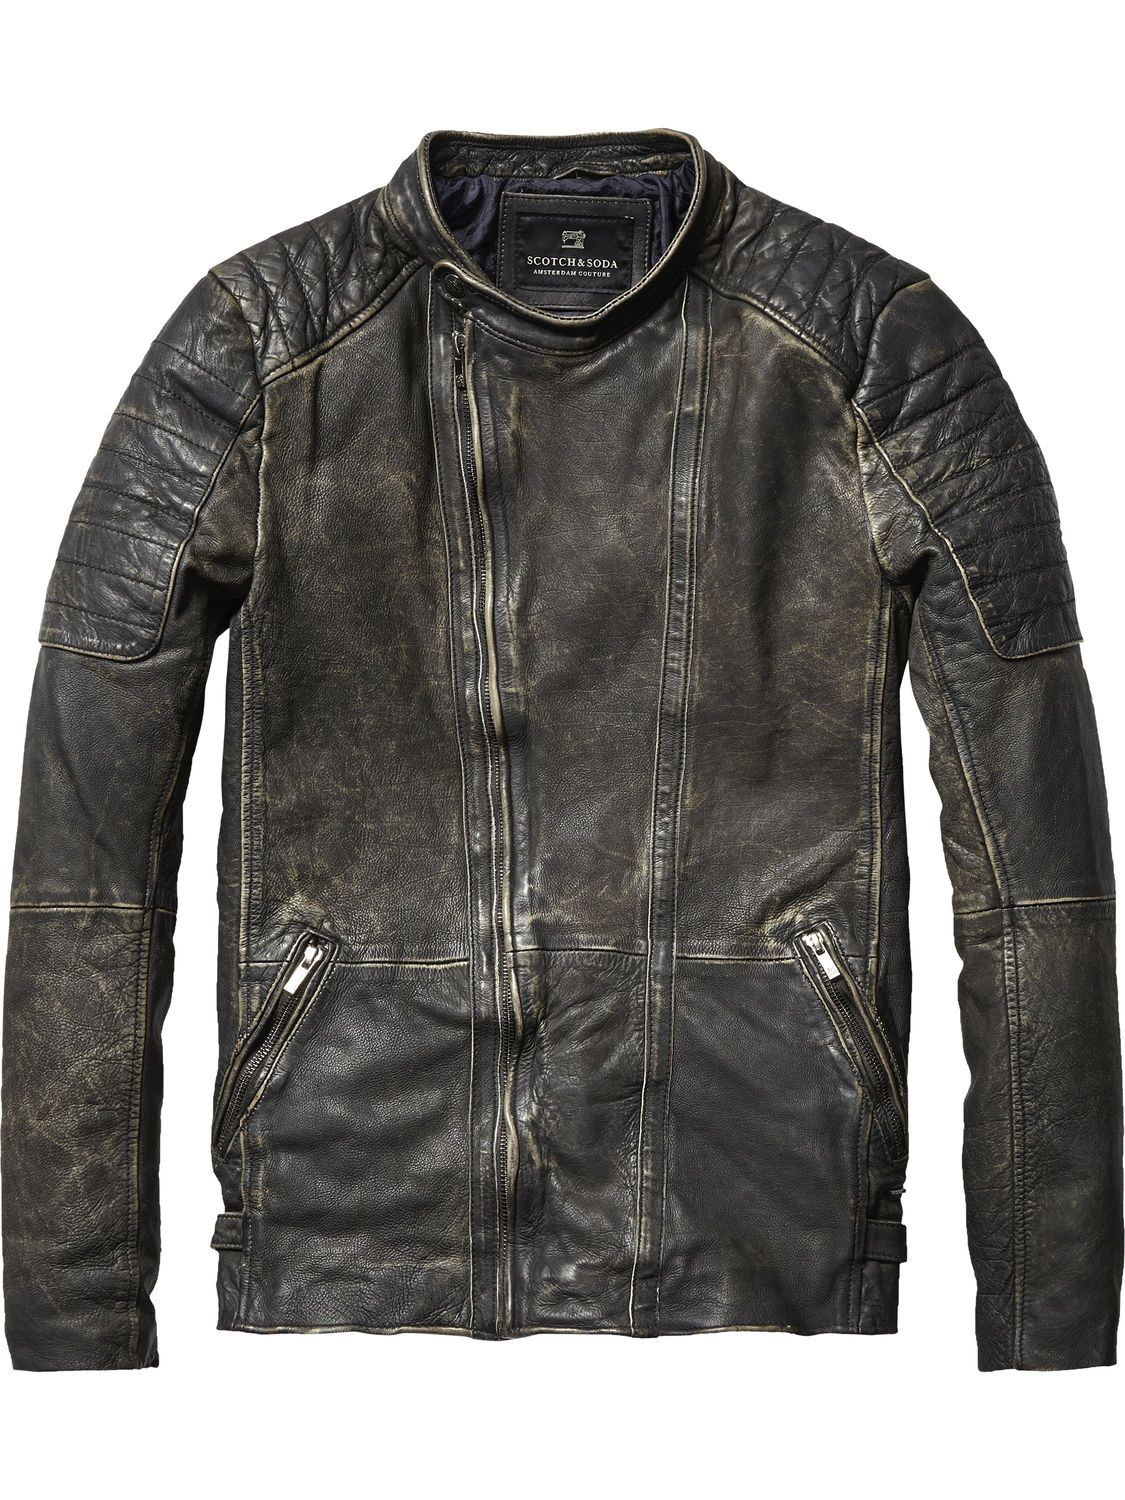 Washed Leather Biker Jacket | Leather Jackets | Men's Clothing at ... : scotch and soda quilted leather jacket - Adamdwight.com